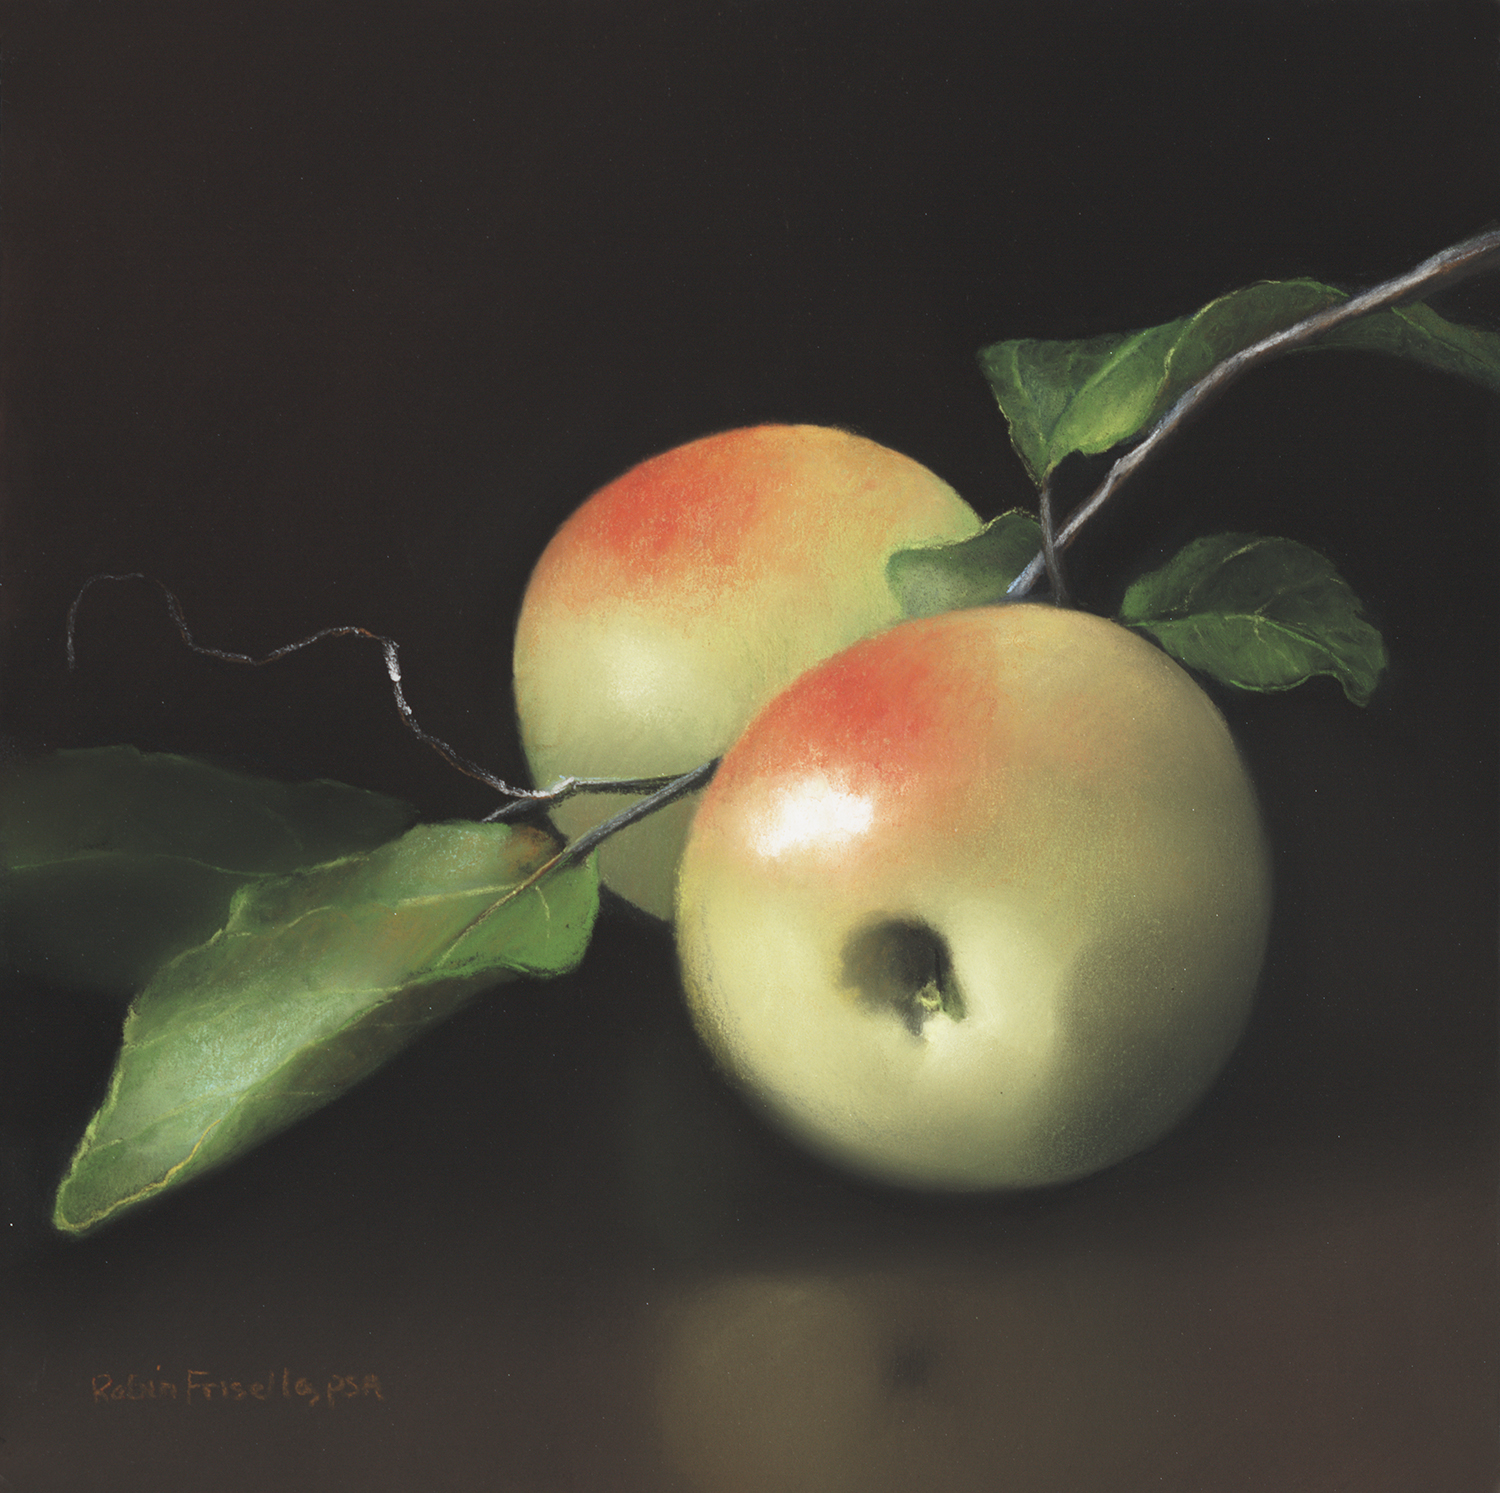 Green Apples on a Vine